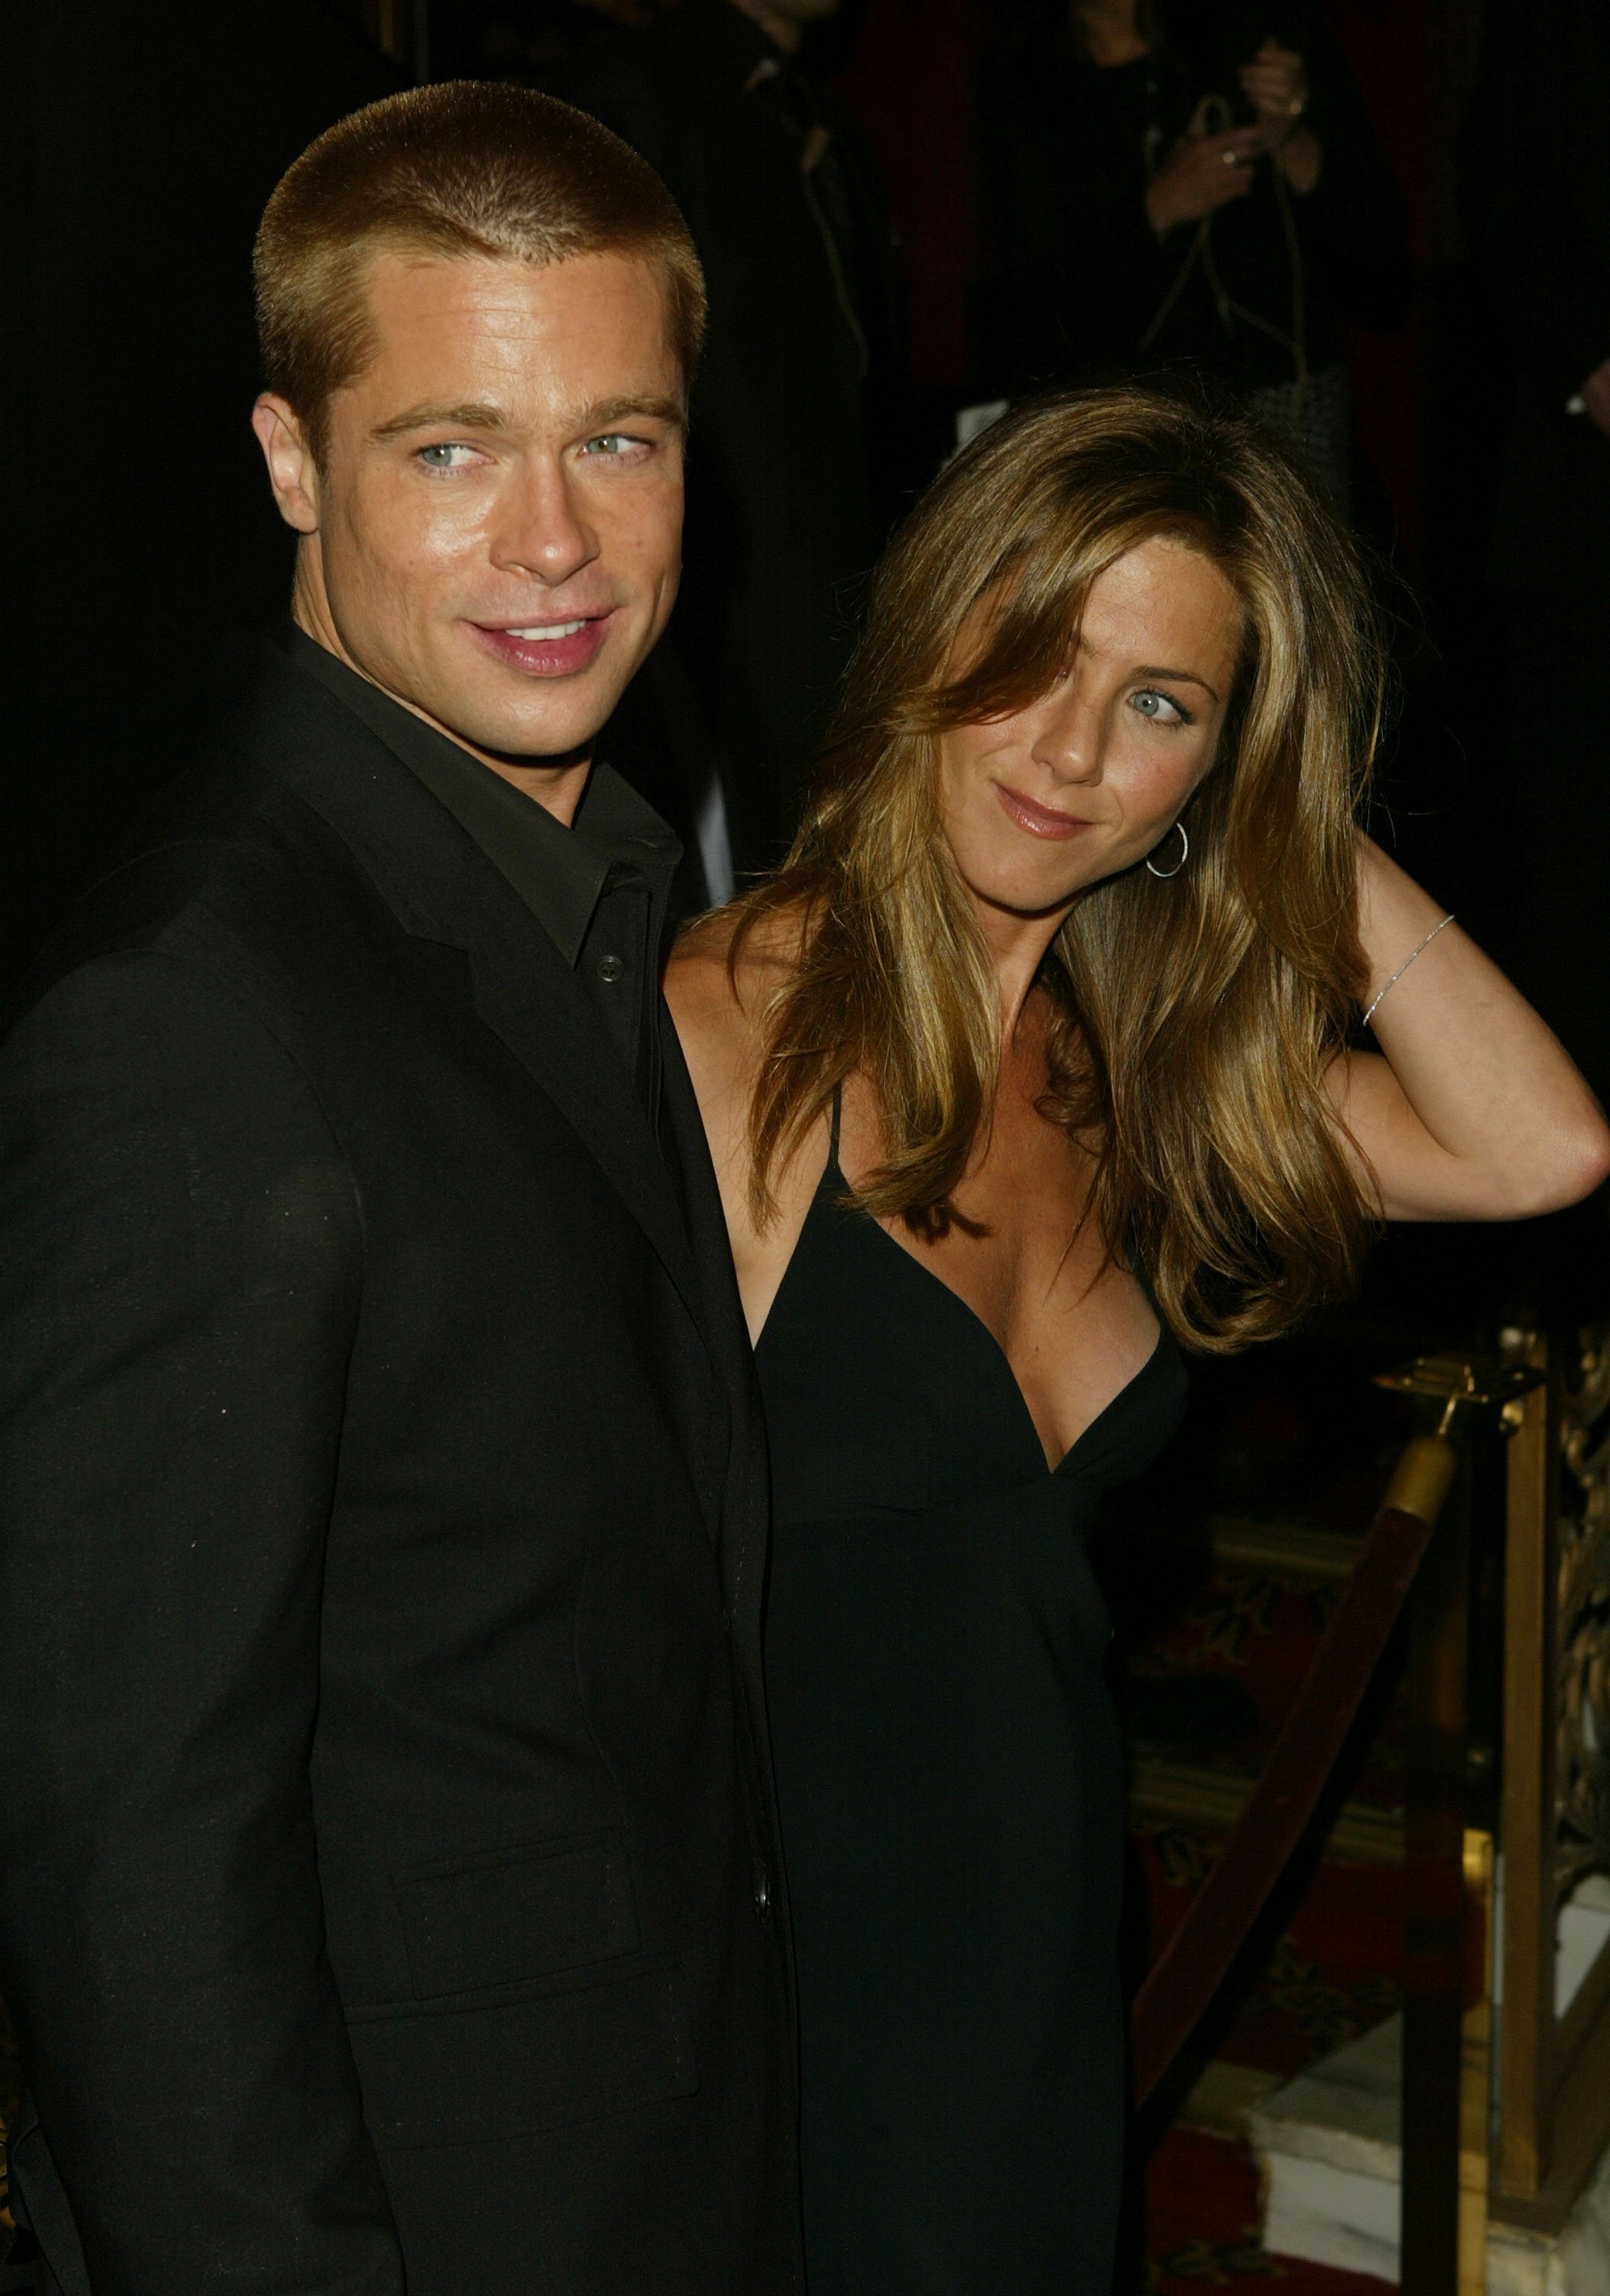 Brad Pitt and Jennifer Aniston when they were still an item | Photo: Getty Images